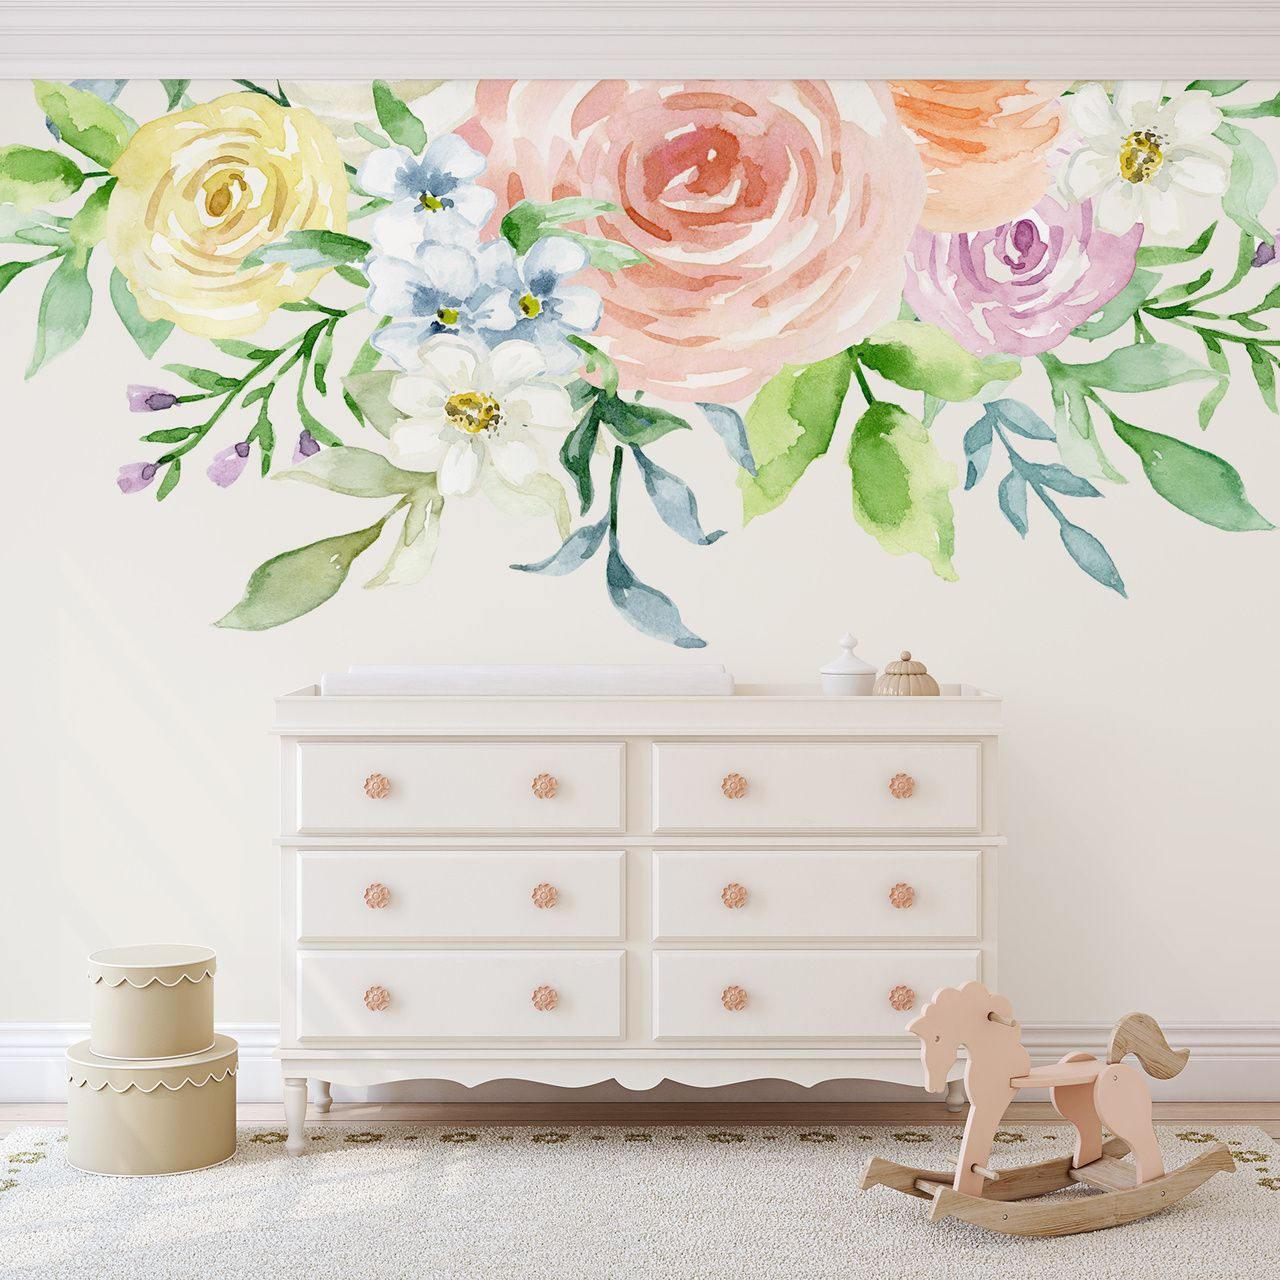 Sophia Pastel Watercolors Flowers Blooms Wall Mural Decal In 2019